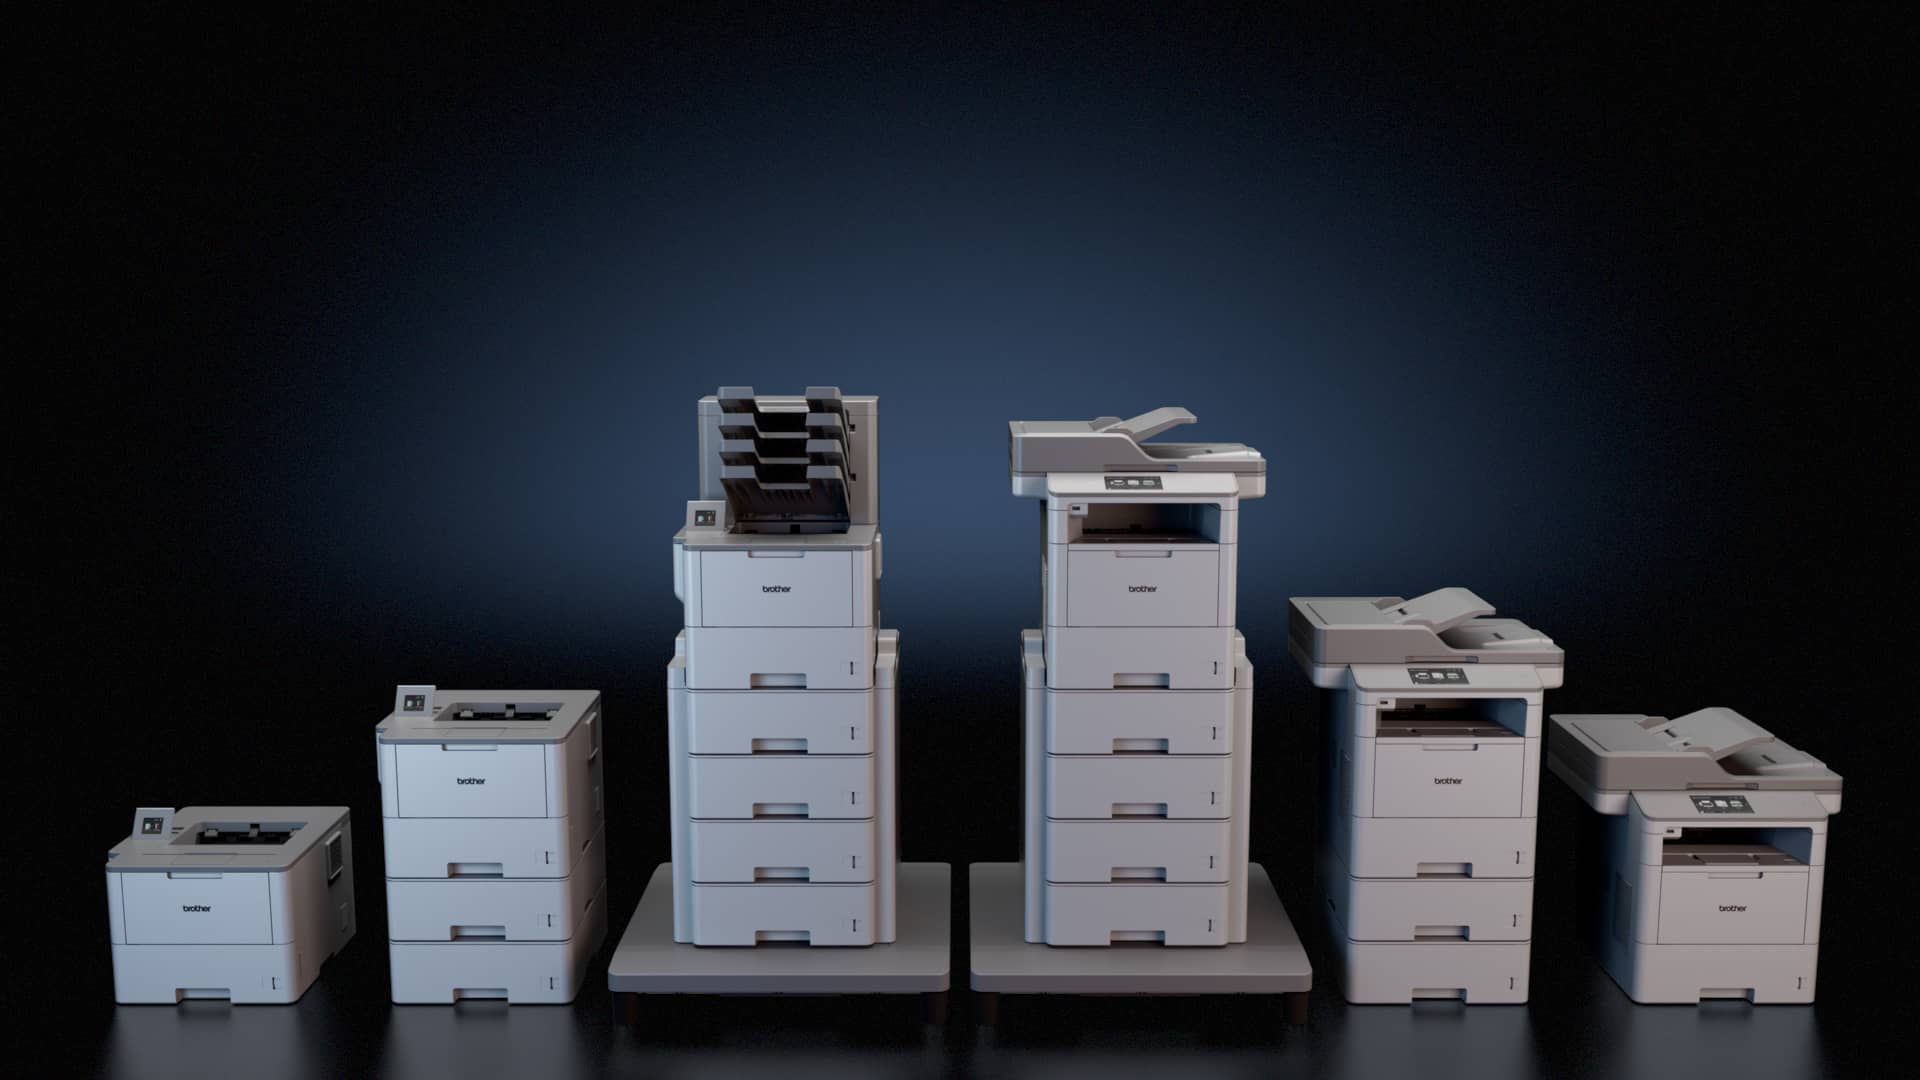 Brother copiers, printers, and MFPs against a dark background